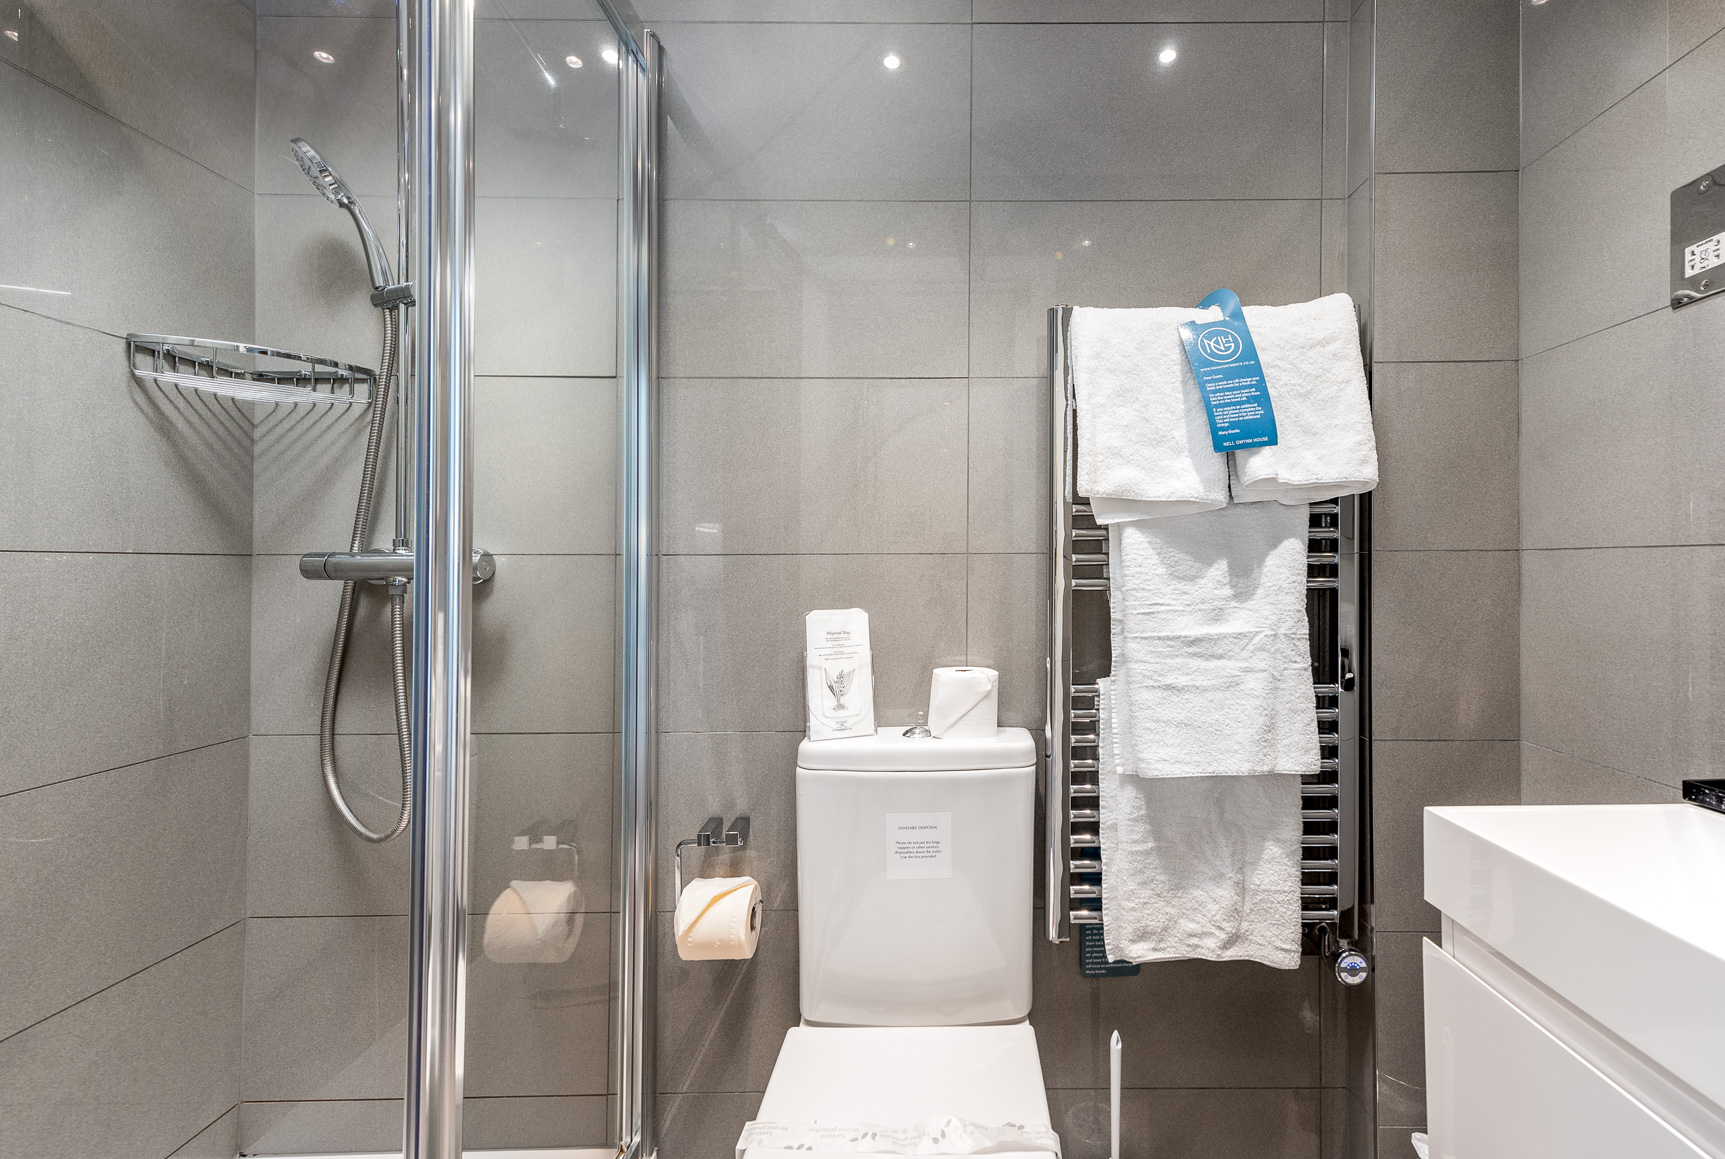 Shower at Nell Gwynn House Accommodation, Chelsea, London